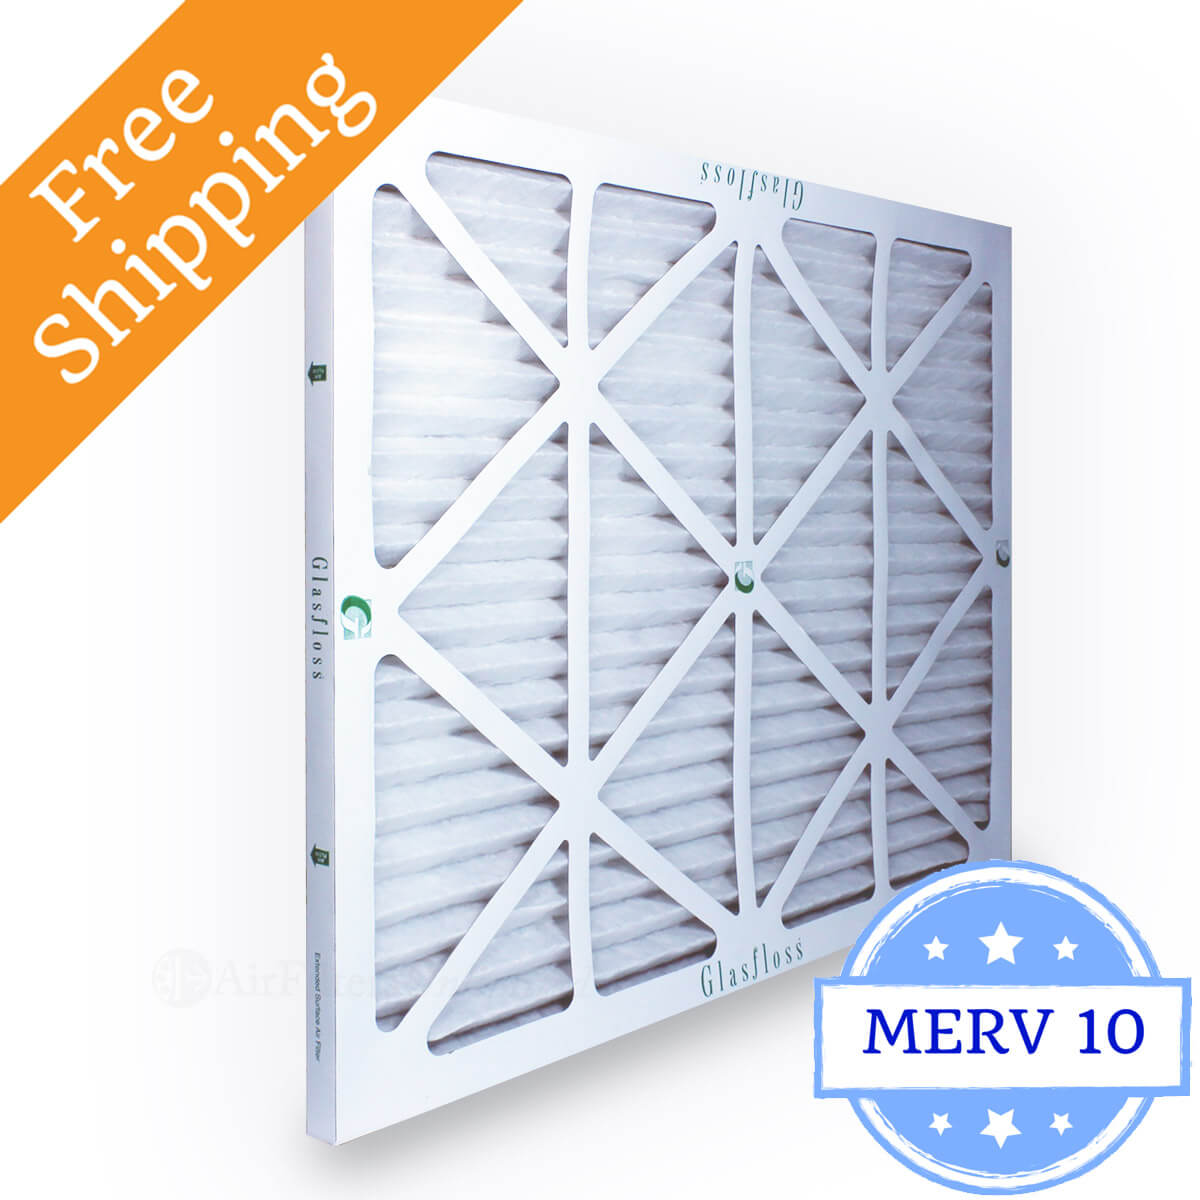 Glasfloss 18x25x1 Air Filter ZL Series